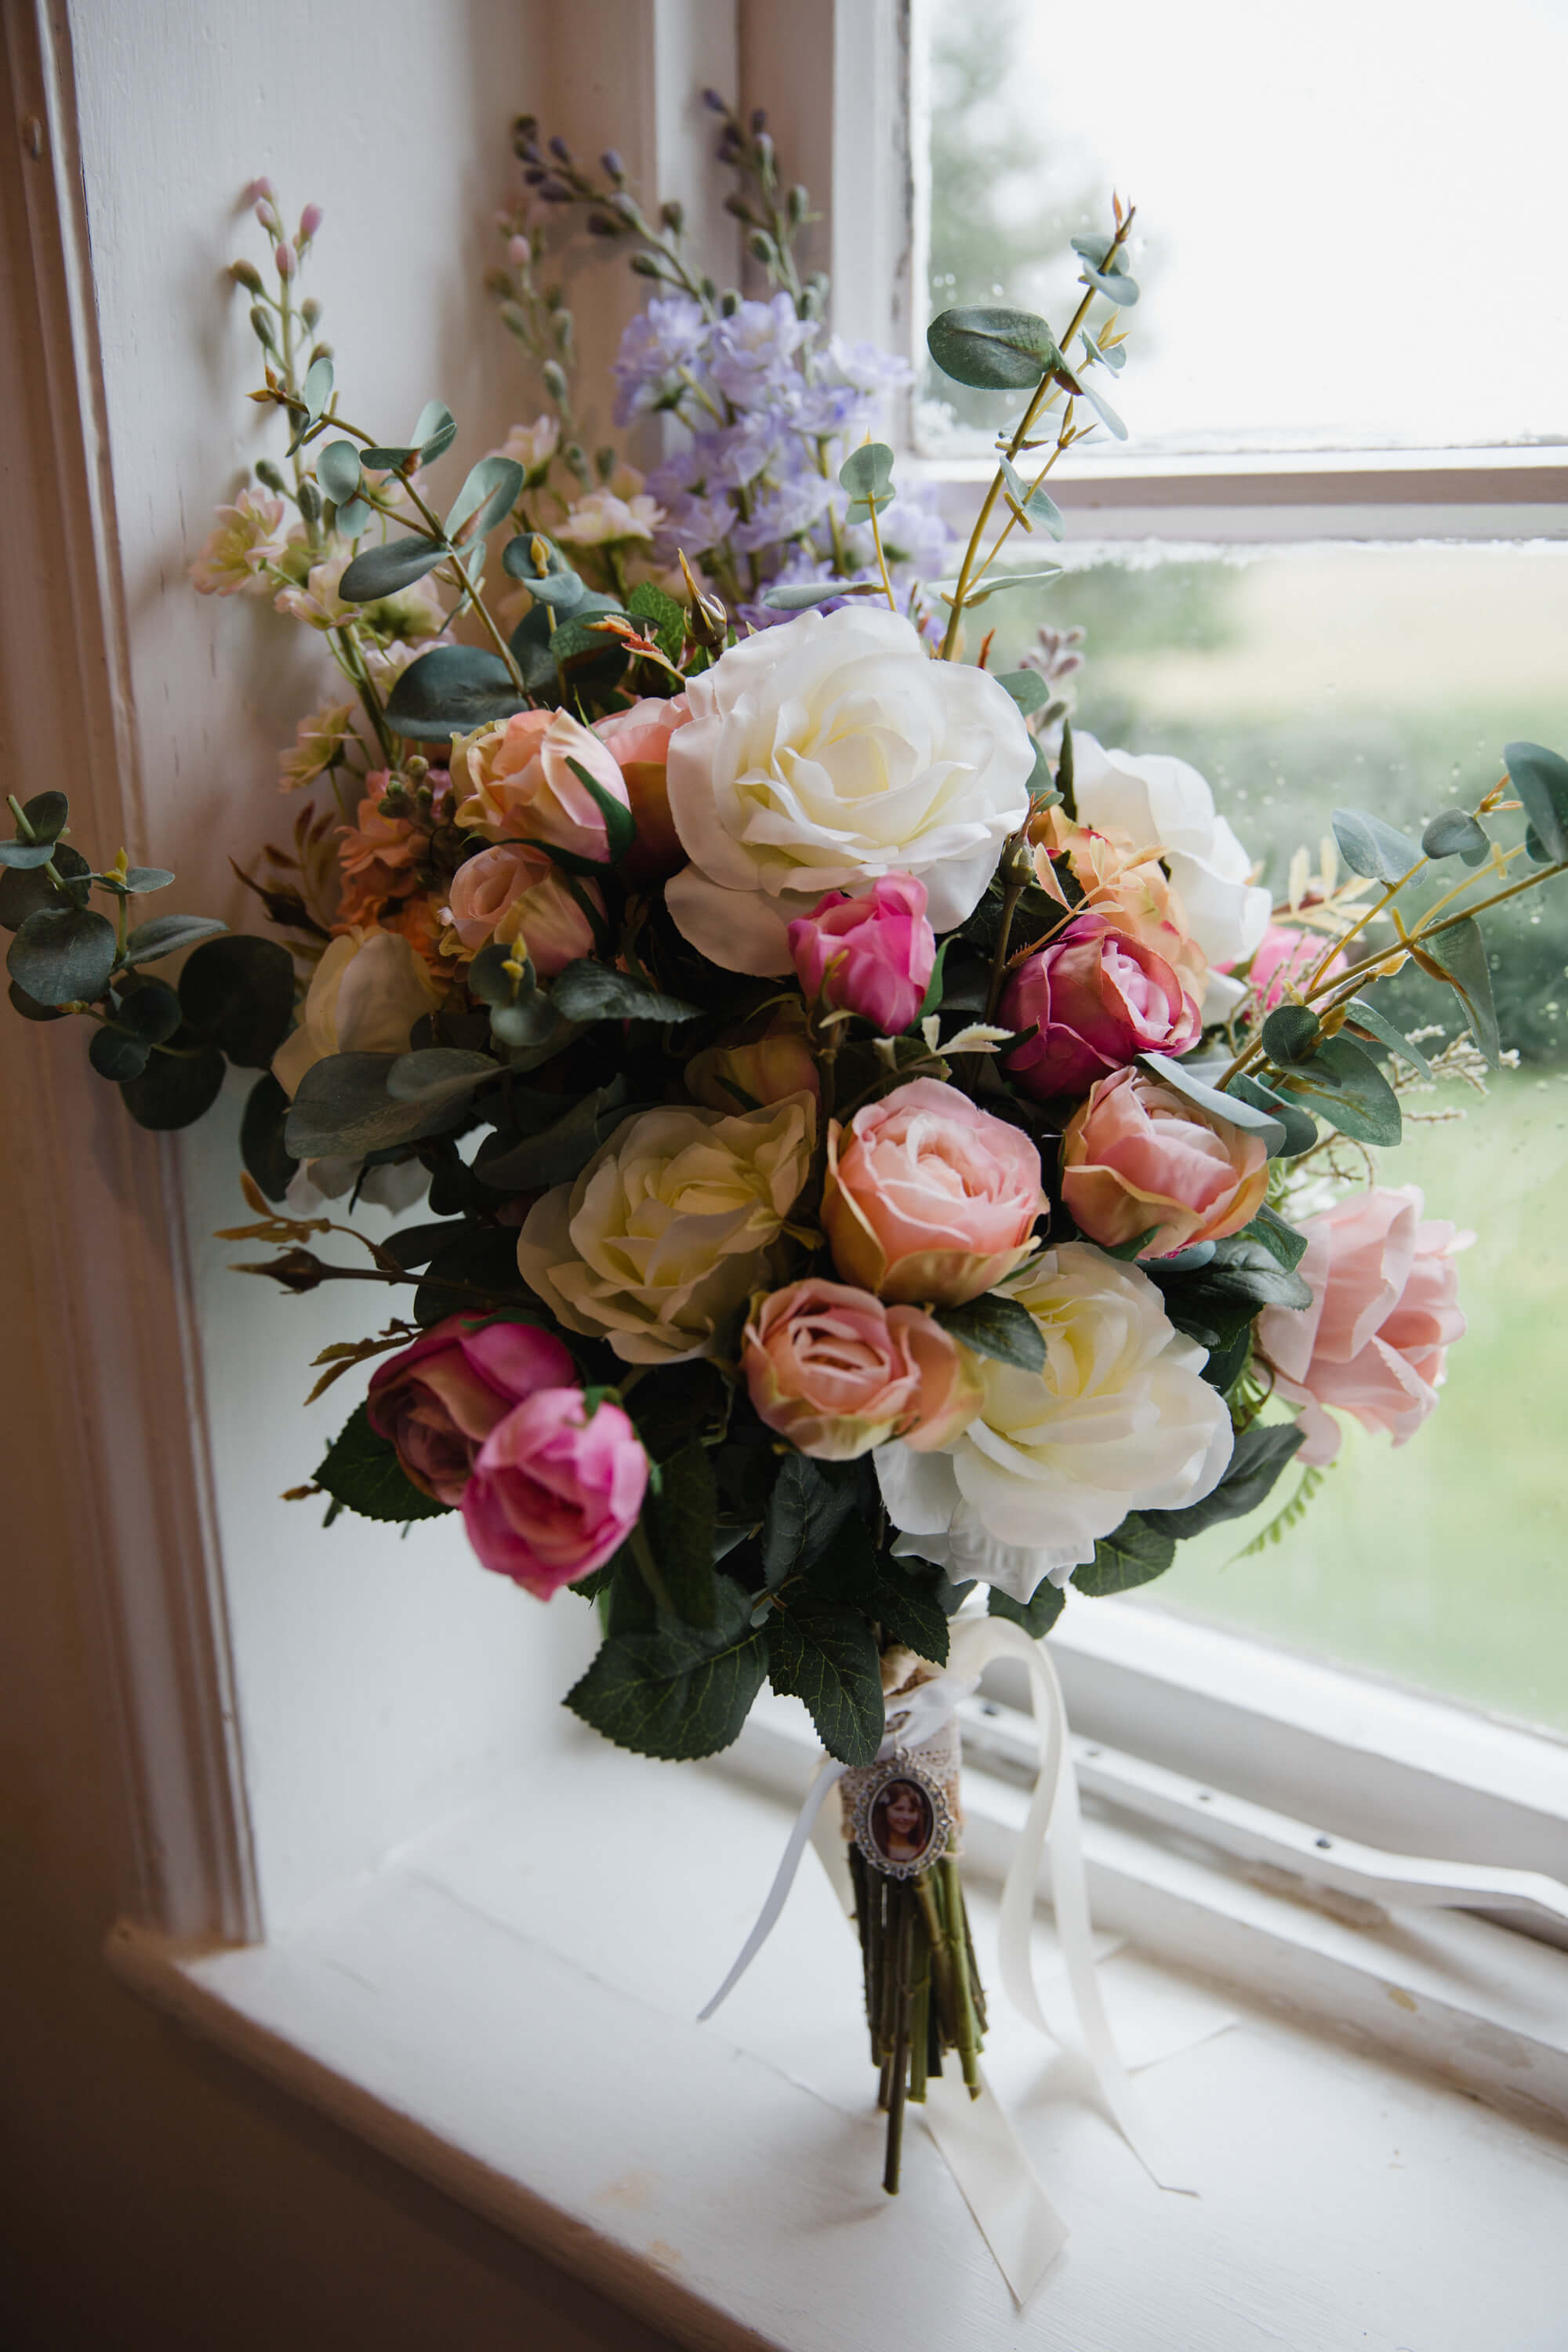 bouquet of flowers resting upright in window as natural light shines in